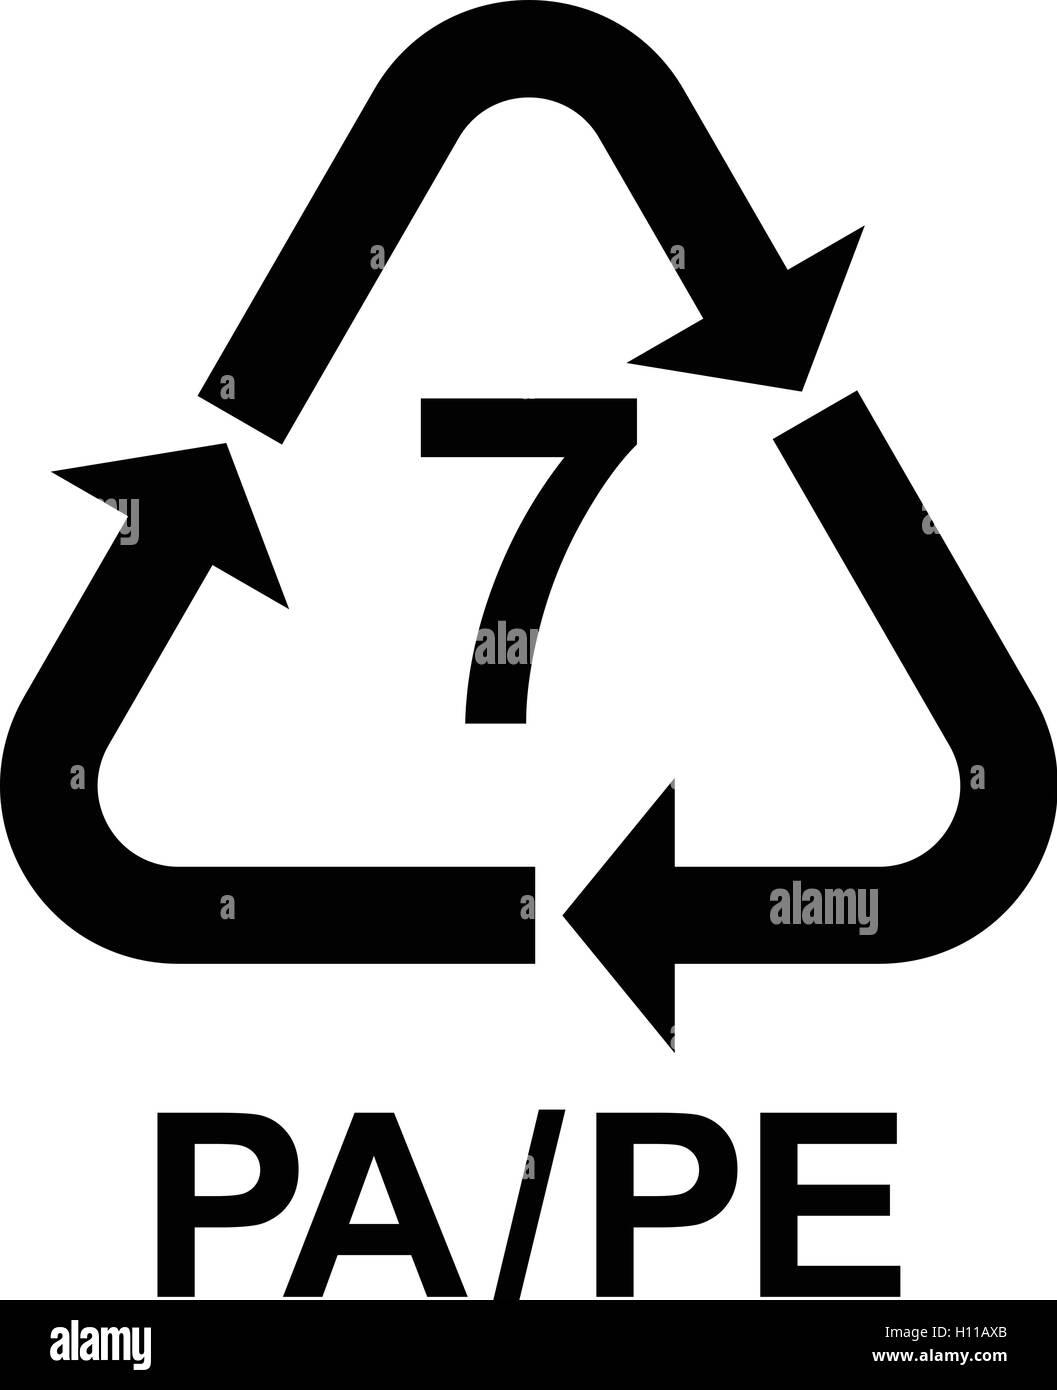 Mobius symbol black and white stock photos images alamy plastic recycling symbol pape 7 plastic recycling code pape 7 buycottarizona Image collections